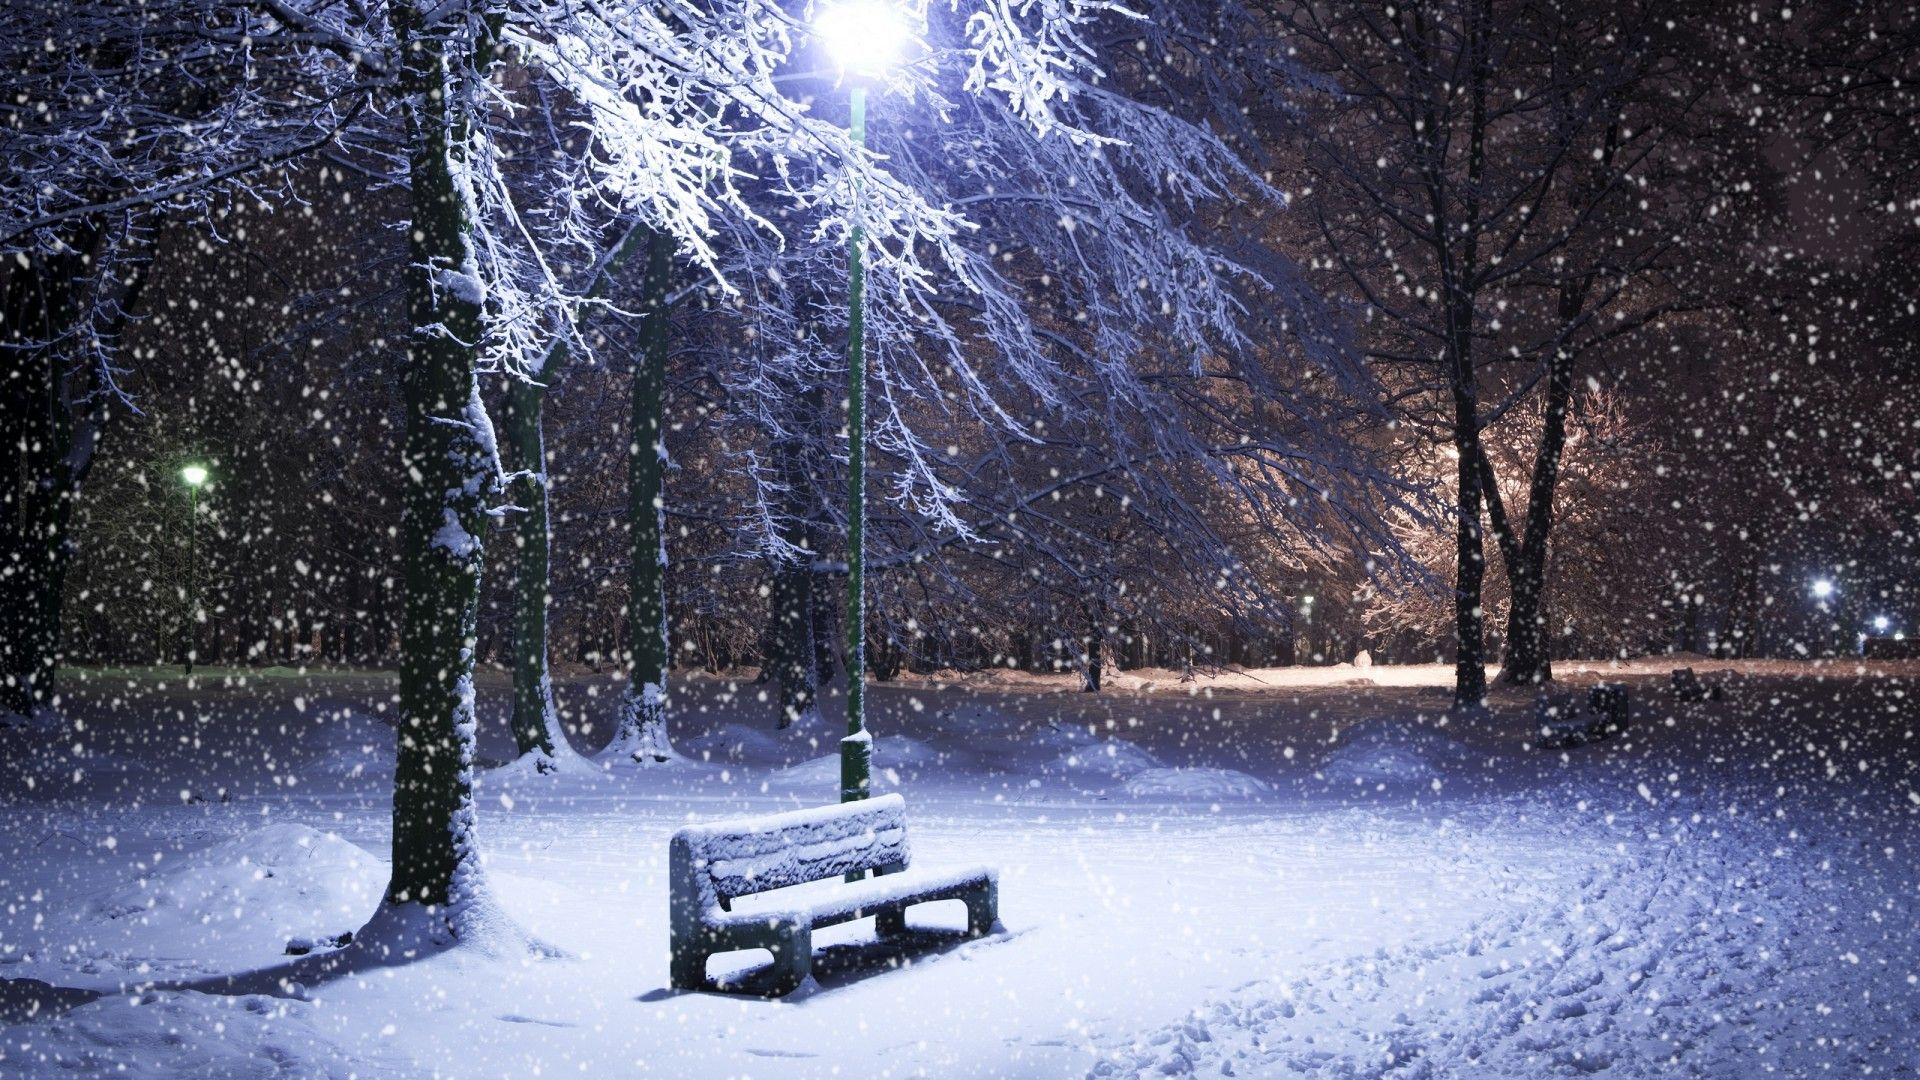 Hd Snow Wallpaper